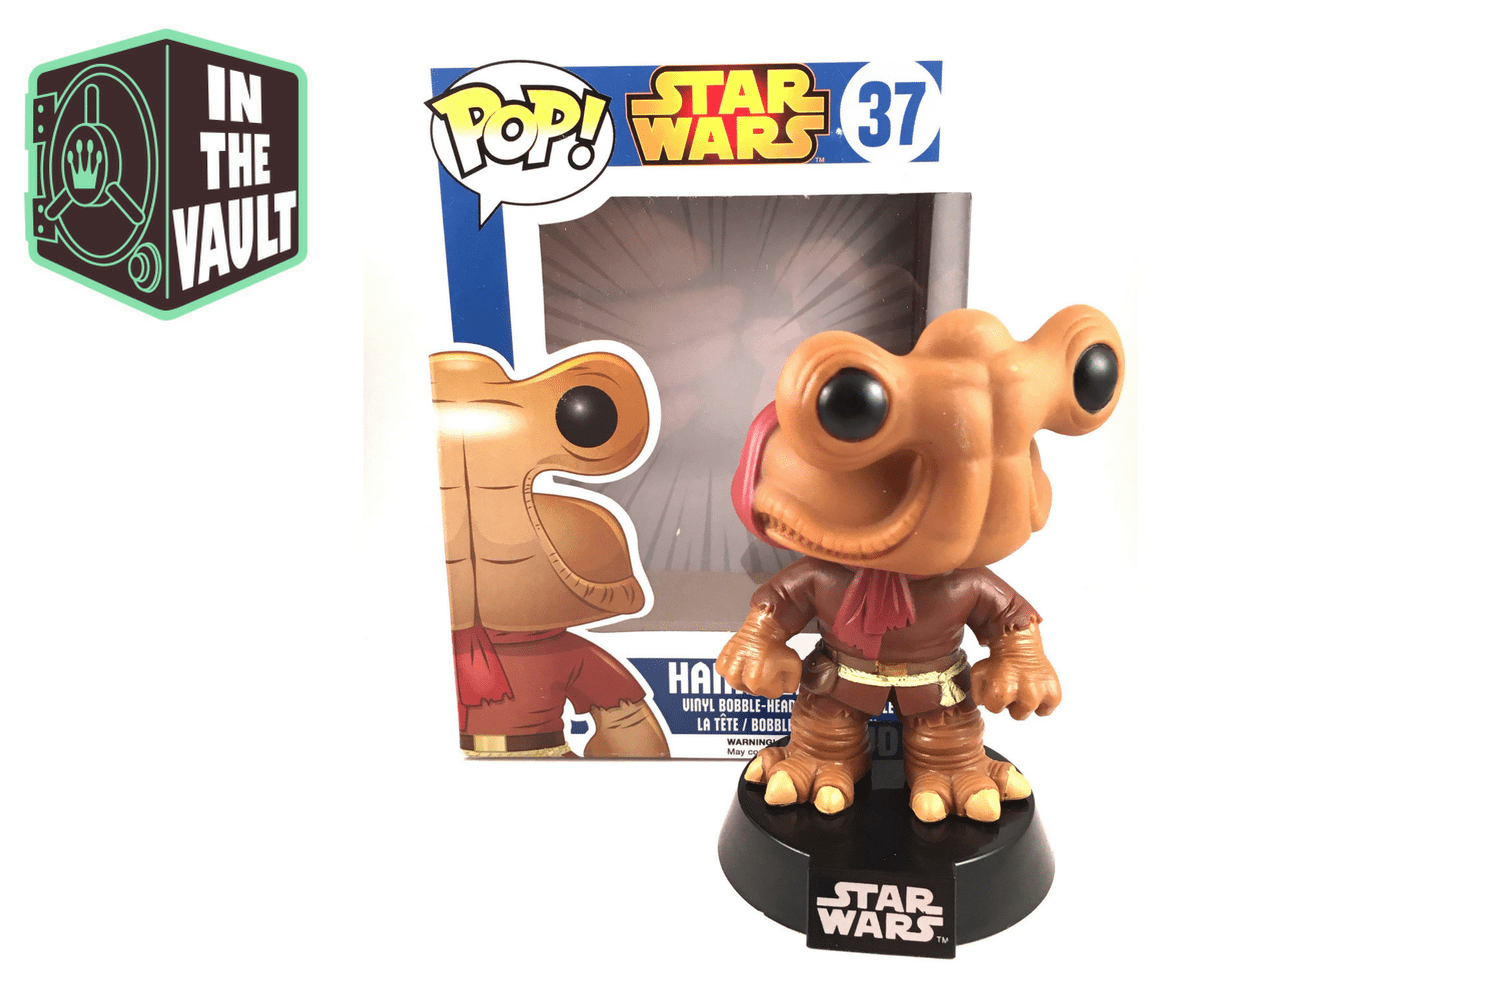 Funko Pop! Star Wars Guide #37 Hammerhead